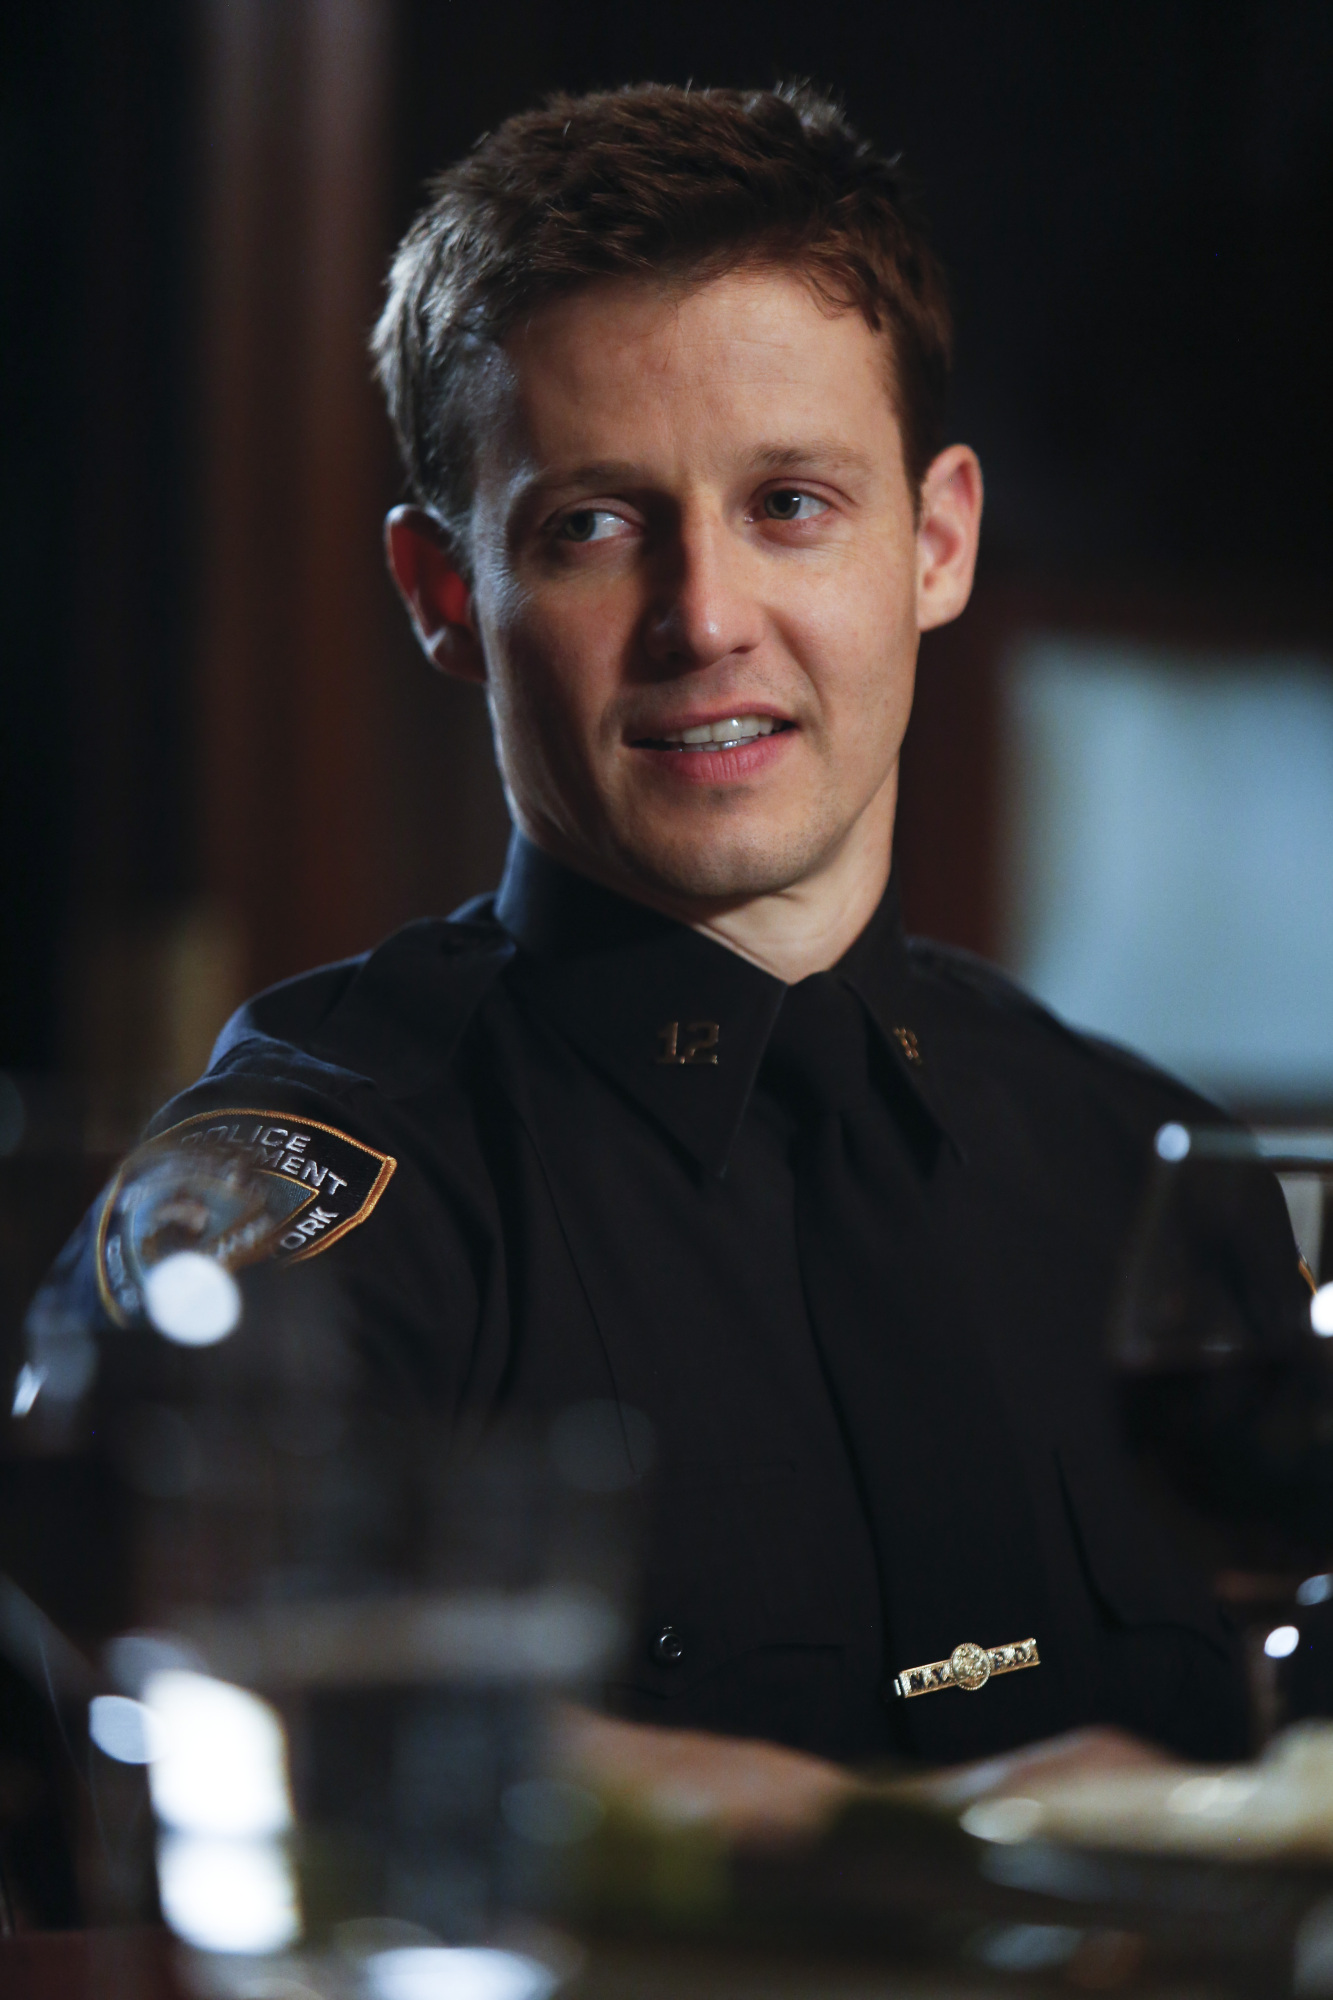 32. As of May 2014, Will Estes was still single ... if you can believe it.